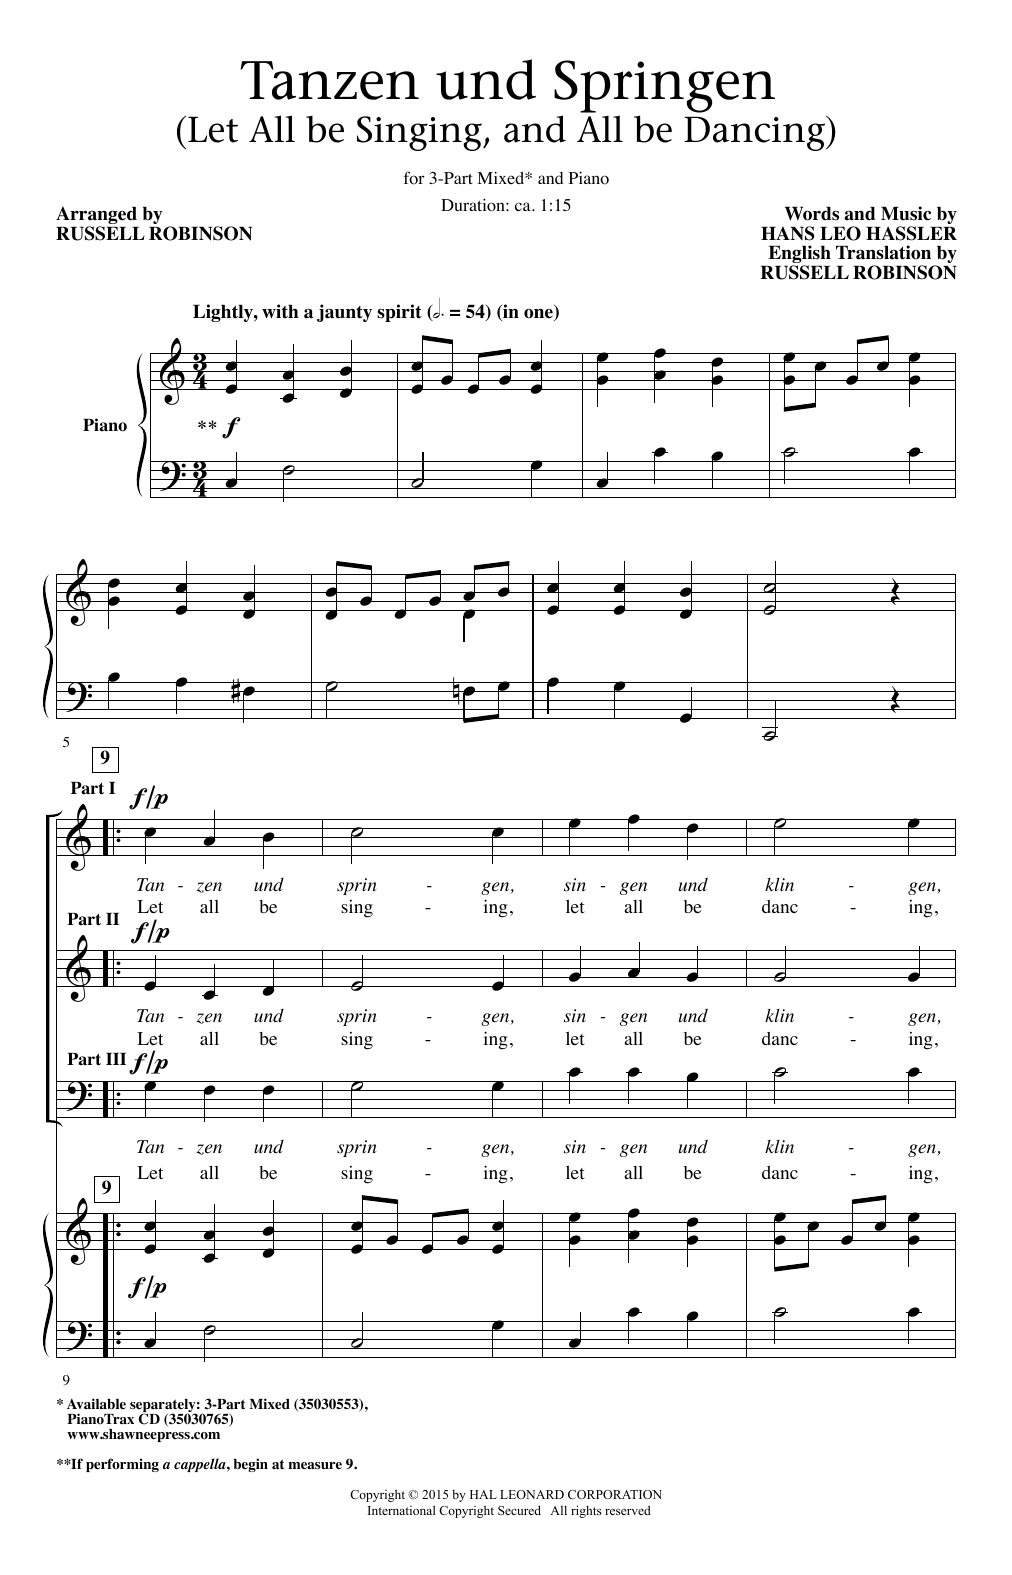 Russell Robinson Tanzen Und Springen sheet music notes and chords. Download Printable PDF.